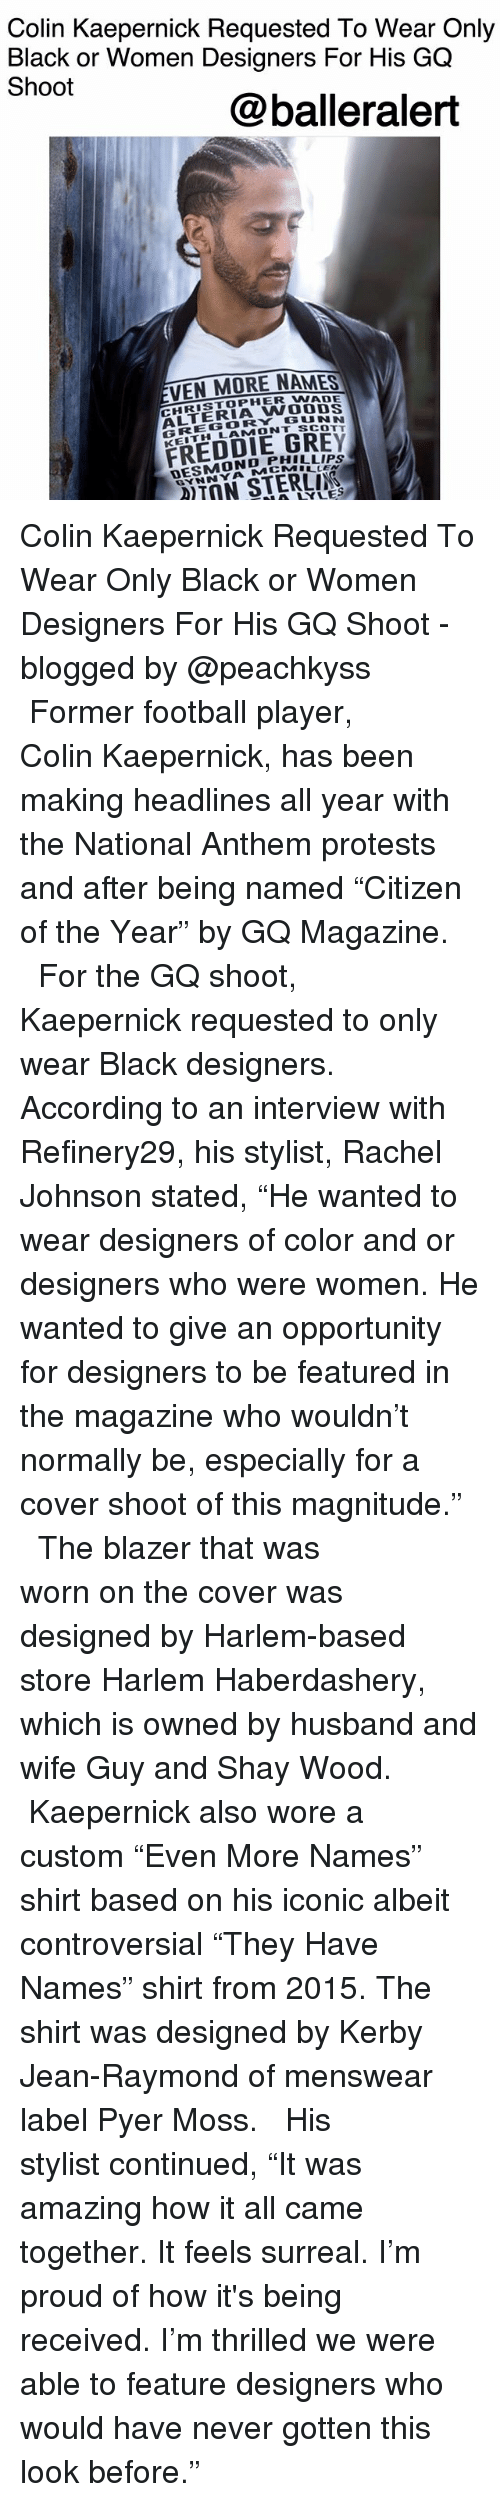 """Colin Kaepernick, Football, and Memes: Colin Kaepernick Requested To Wear Only  Black or Women Designers For His GQ  Shoot  @balleralert  VEN MORE NAMES  CHRISTOPHER WADE  ALTERIA WOOOS  GREGORY GUNN  KEITH LAMONT SCOTT  FREDDIE GREY  DESMOND PHILLIPs  MCMILLEN  GYNNYA  DIDYLES Colin Kaepernick Requested To Wear Only Black or Women Designers For His GQ Shoot - blogged by @peachkyss ⠀⠀⠀⠀⠀⠀⠀ ⠀⠀⠀⠀⠀⠀⠀ Former football player, Colin Kaepernick, has been making headlines all year with the National Anthem protests and after being named """"Citizen of the Year"""" by GQ Magazine. ⠀⠀⠀⠀⠀⠀⠀ ⠀⠀⠀⠀⠀⠀⠀ For the GQ shoot, Kaepernick requested to only wear Black designers. According to an interview with Refinery29, his stylist, Rachel Johnson stated, """"He wanted to wear designers of color and or designers who were women. He wanted to give an opportunity for designers to be featured in the magazine who wouldn't normally be, especially for a cover shoot of this magnitude."""" ⠀⠀⠀⠀⠀⠀⠀ ⠀⠀⠀⠀⠀⠀⠀ The blazer that was worn on the cover was designed by Harlem-based store Harlem Haberdashery, which is owned by husband and wife Guy and Shay Wood. ⠀⠀⠀⠀⠀⠀⠀ ⠀⠀⠀⠀⠀⠀⠀ Kaepernick also wore a custom """"Even More Names"""" shirt based on his iconic albeit controversial """"They Have Names"""" shirt from 2015. The shirt was designed by Kerby Jean-Raymond of menswear label Pyer Moss. ⠀⠀⠀⠀⠀⠀⠀ ⠀⠀⠀⠀⠀⠀⠀ His stylist continued, """"It was amazing how it all came together. It feels surreal. I'm proud of how it's being received. I'm thrilled we were able to feature designers who would have never gotten this look before."""""""